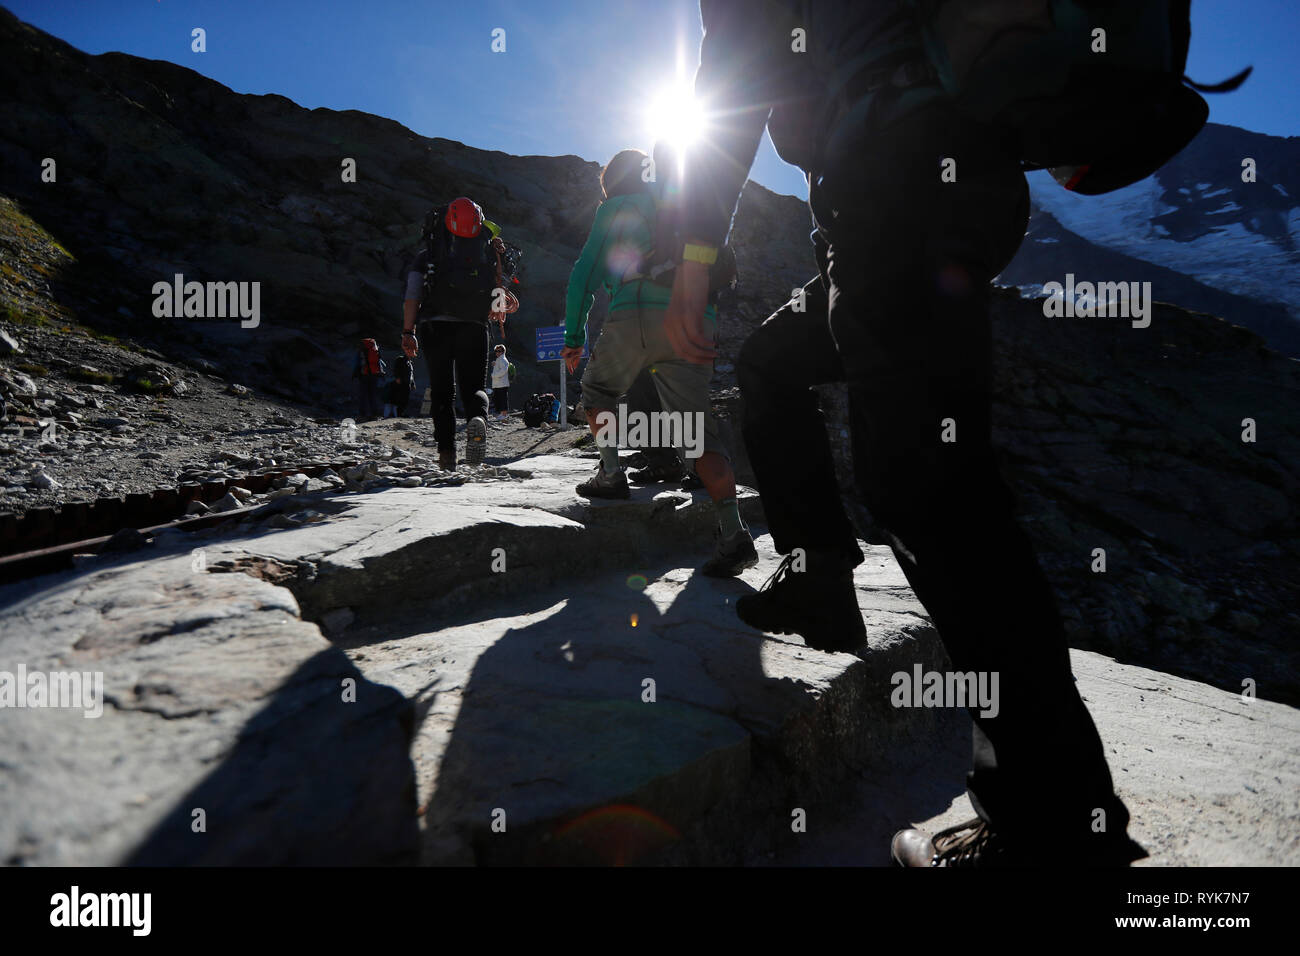 Alpinists during the ascent of Mont Blanc along the regular route via Gouter Refuge.  France. Stock Photo